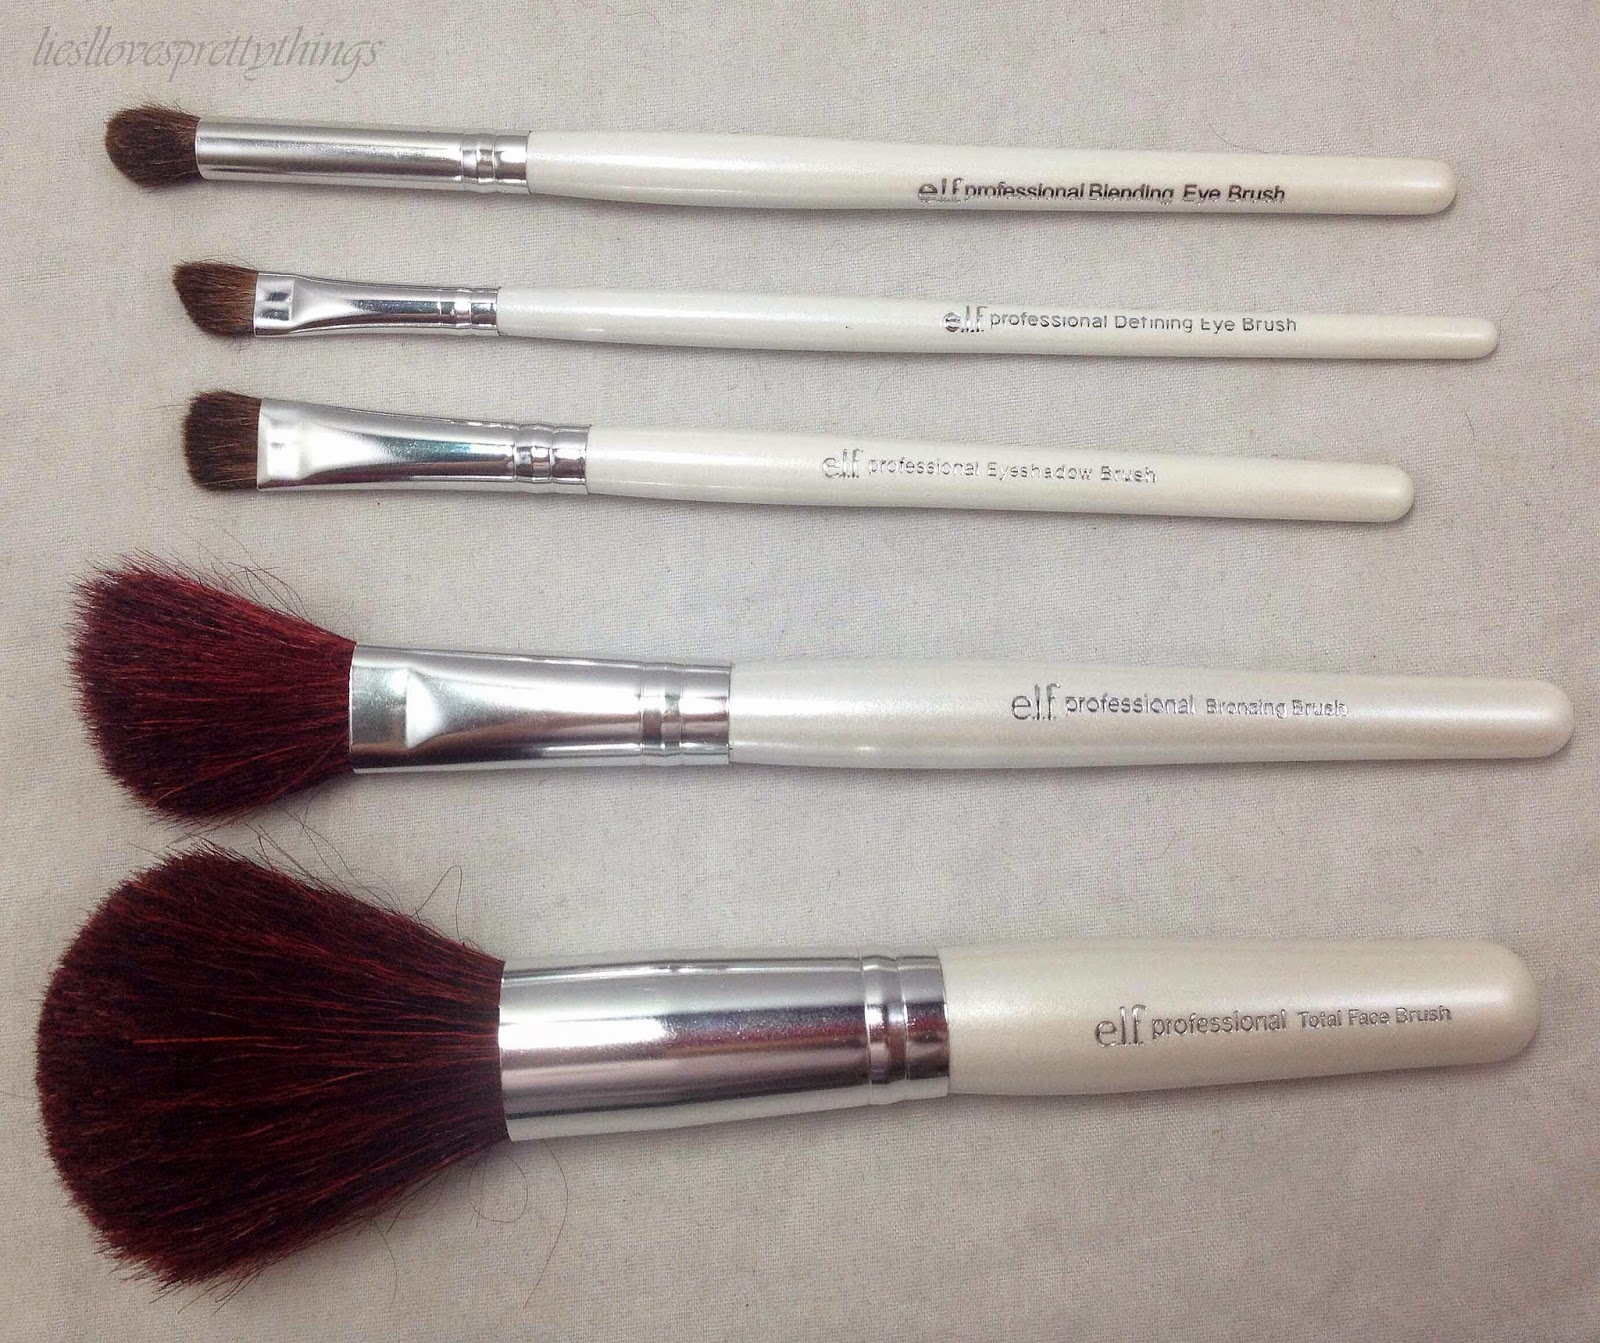 e.l.f. Essential Line Brush Review